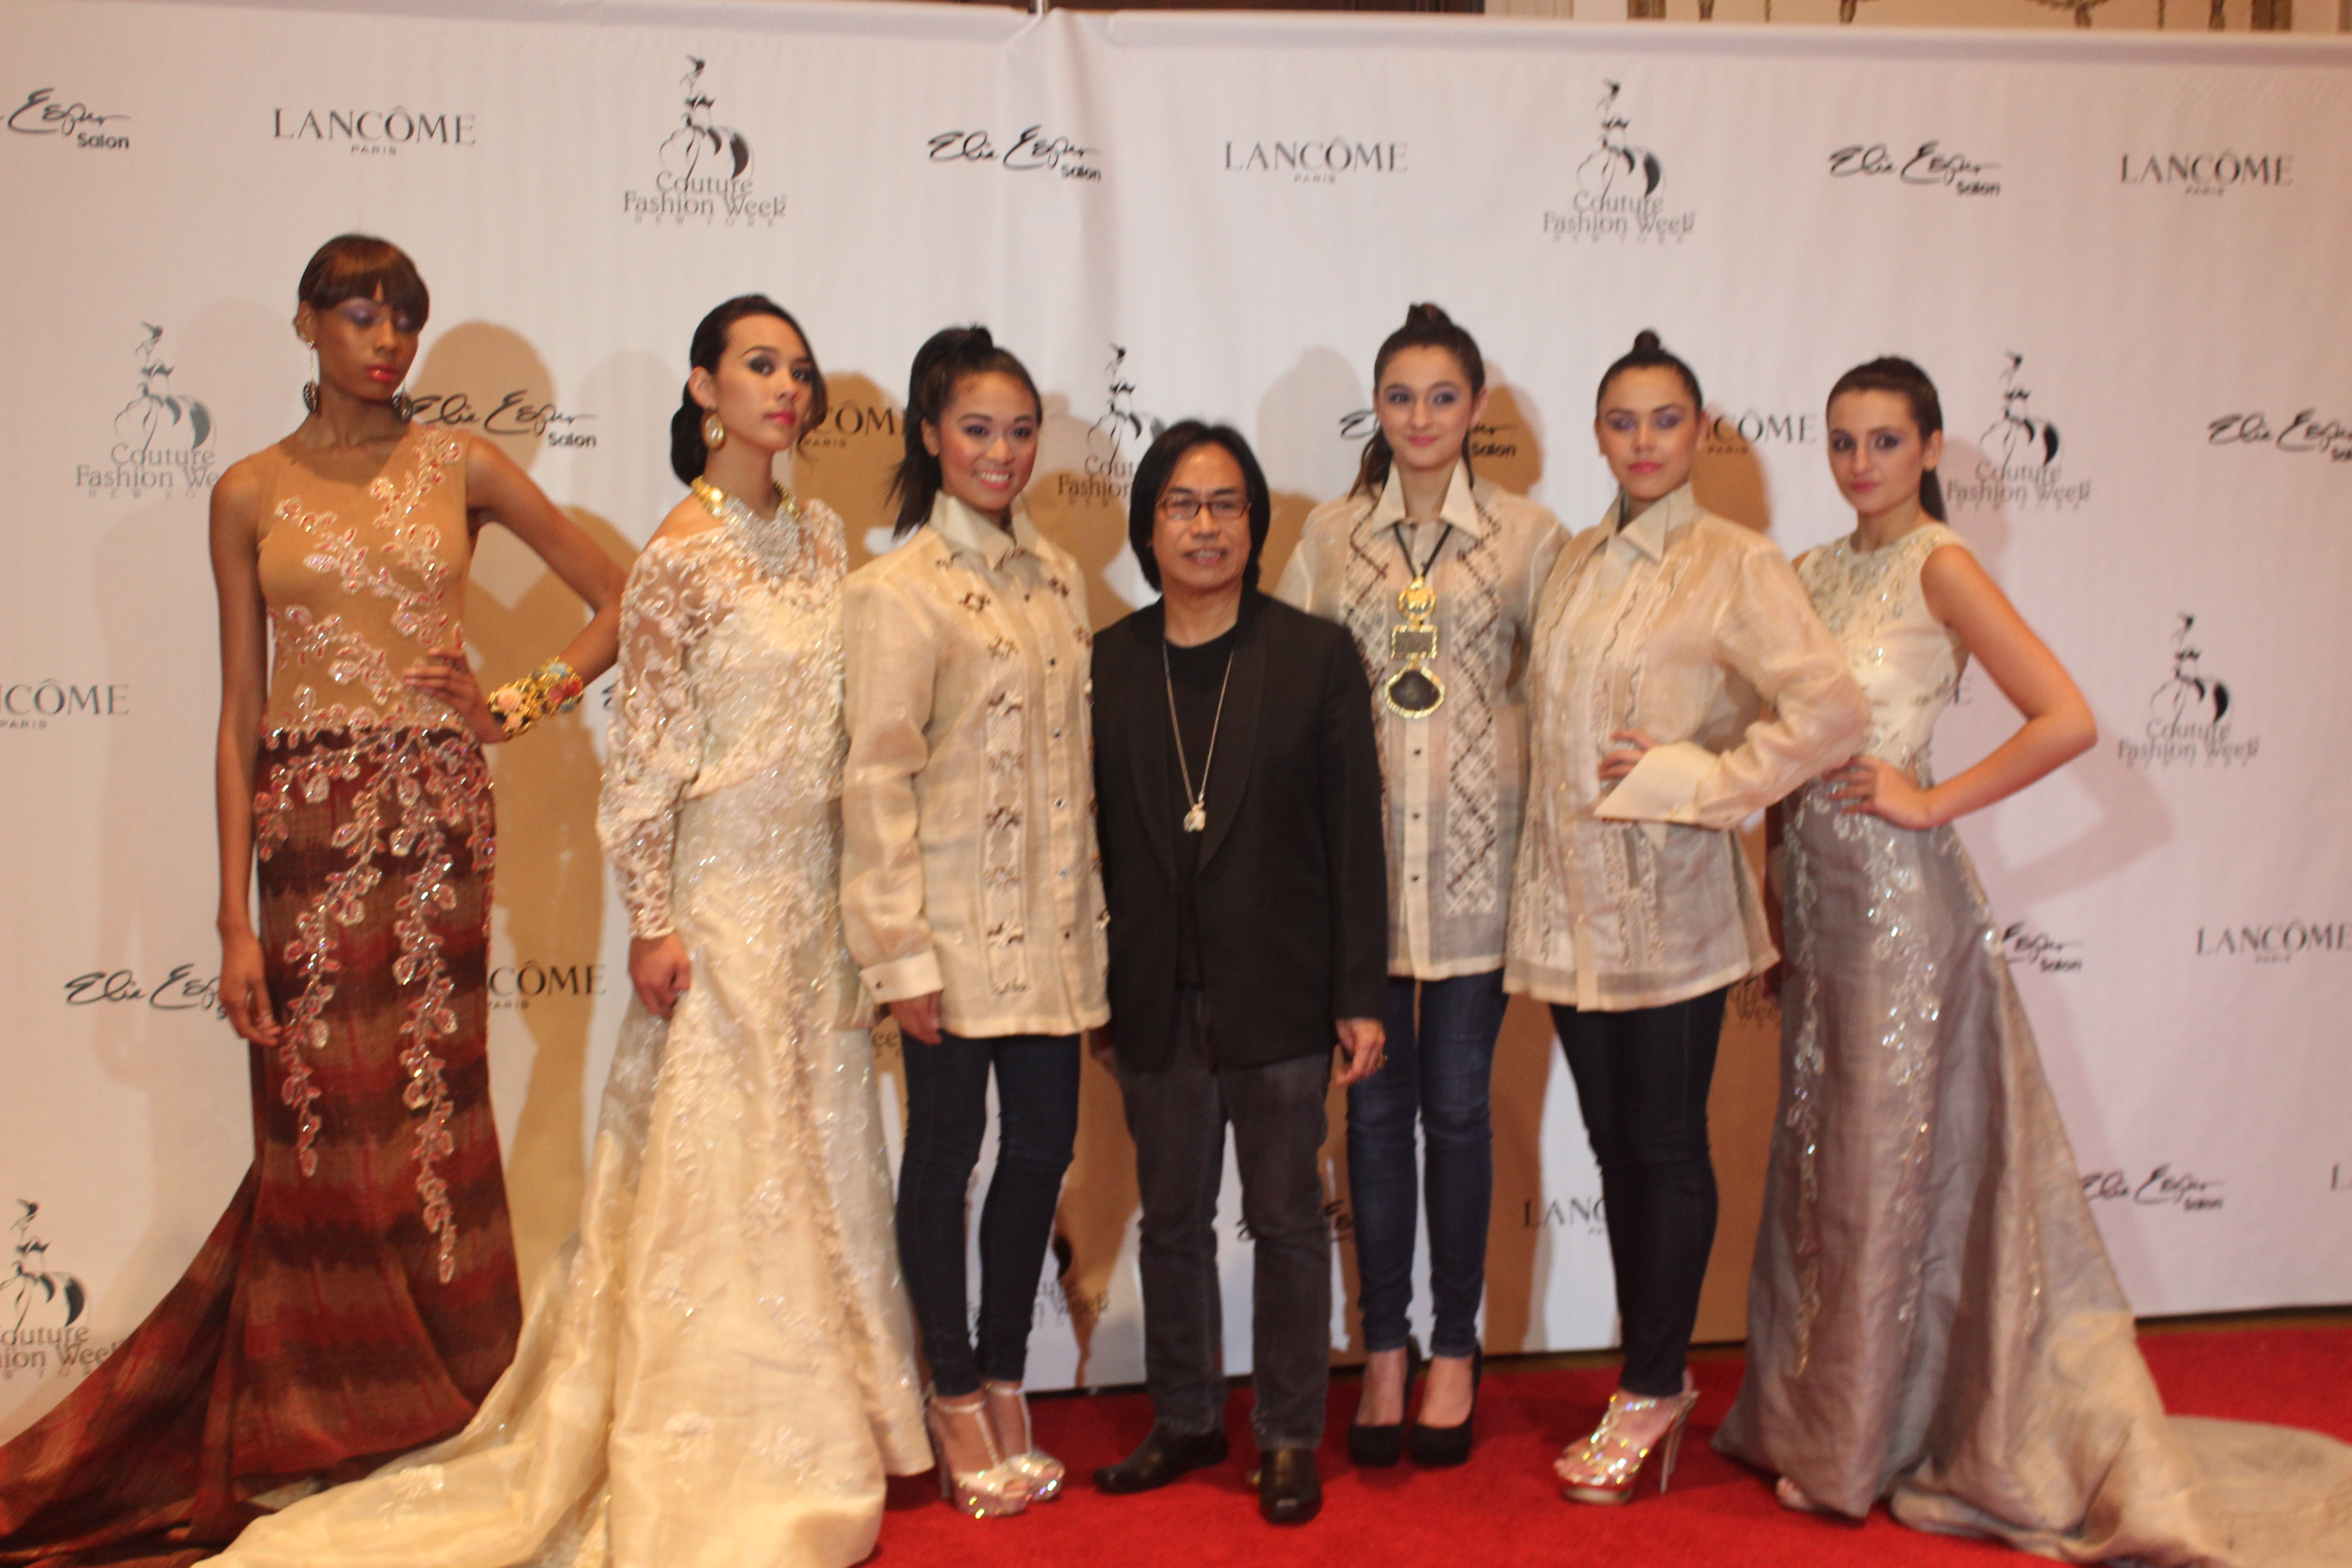 By Merry Wu Filipino designer Barge Ramos was at Couture Fashion Week this past weekend...